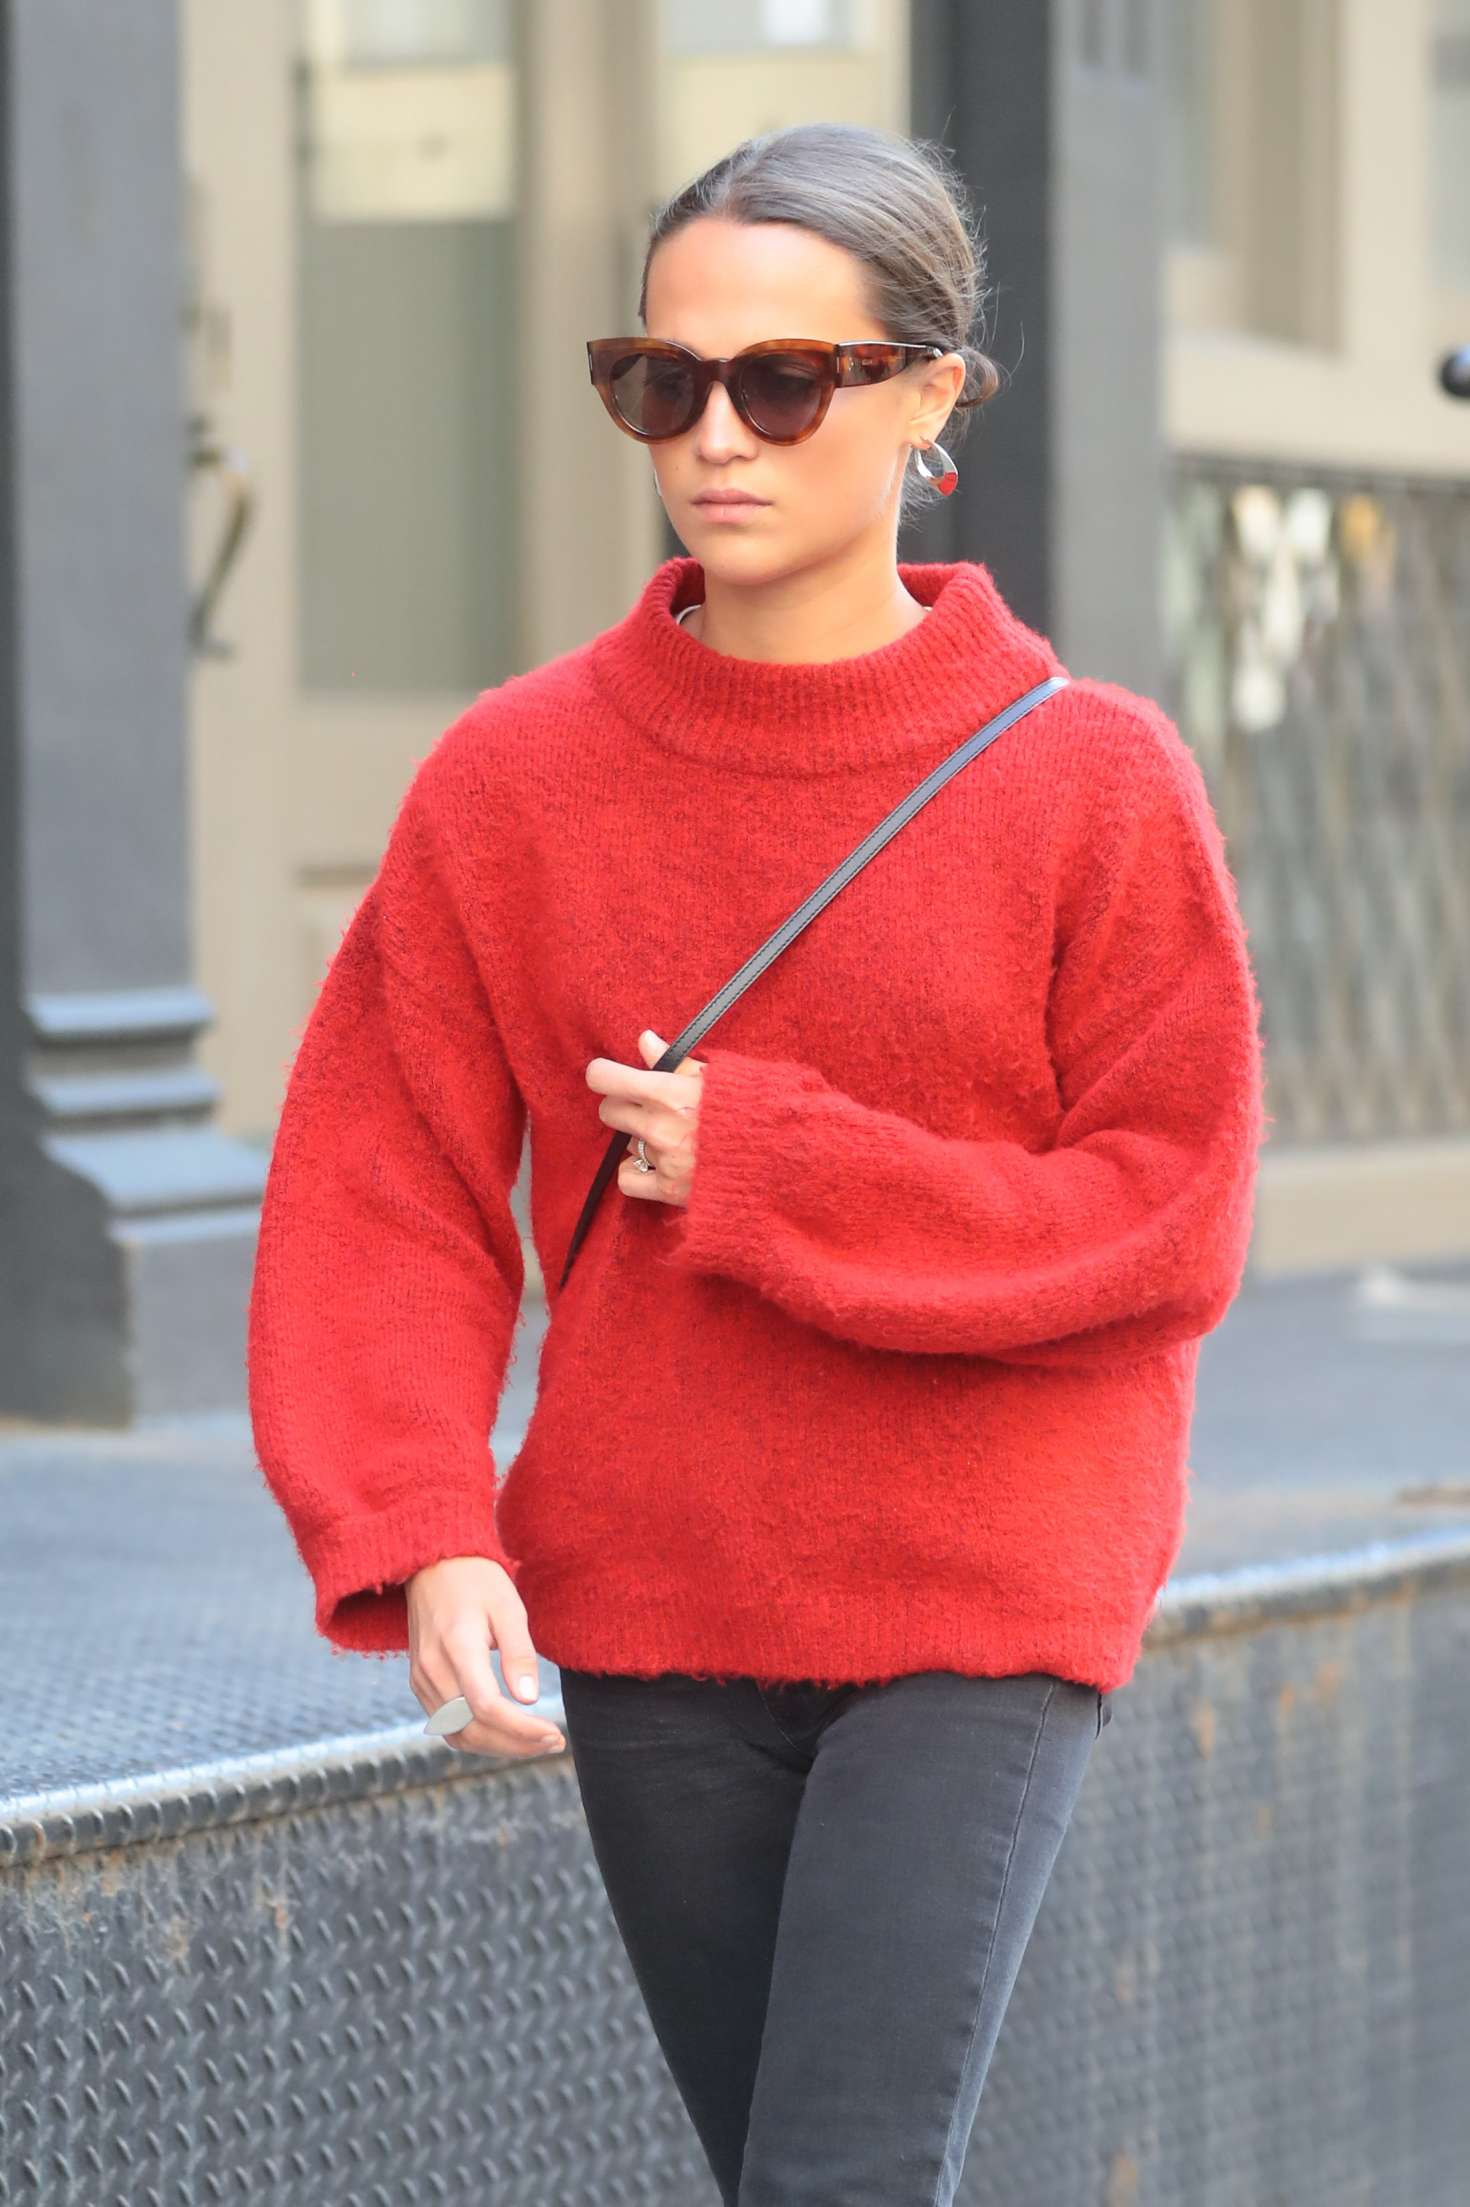 Alicia Vikander In Red Sweaters Out In New York City